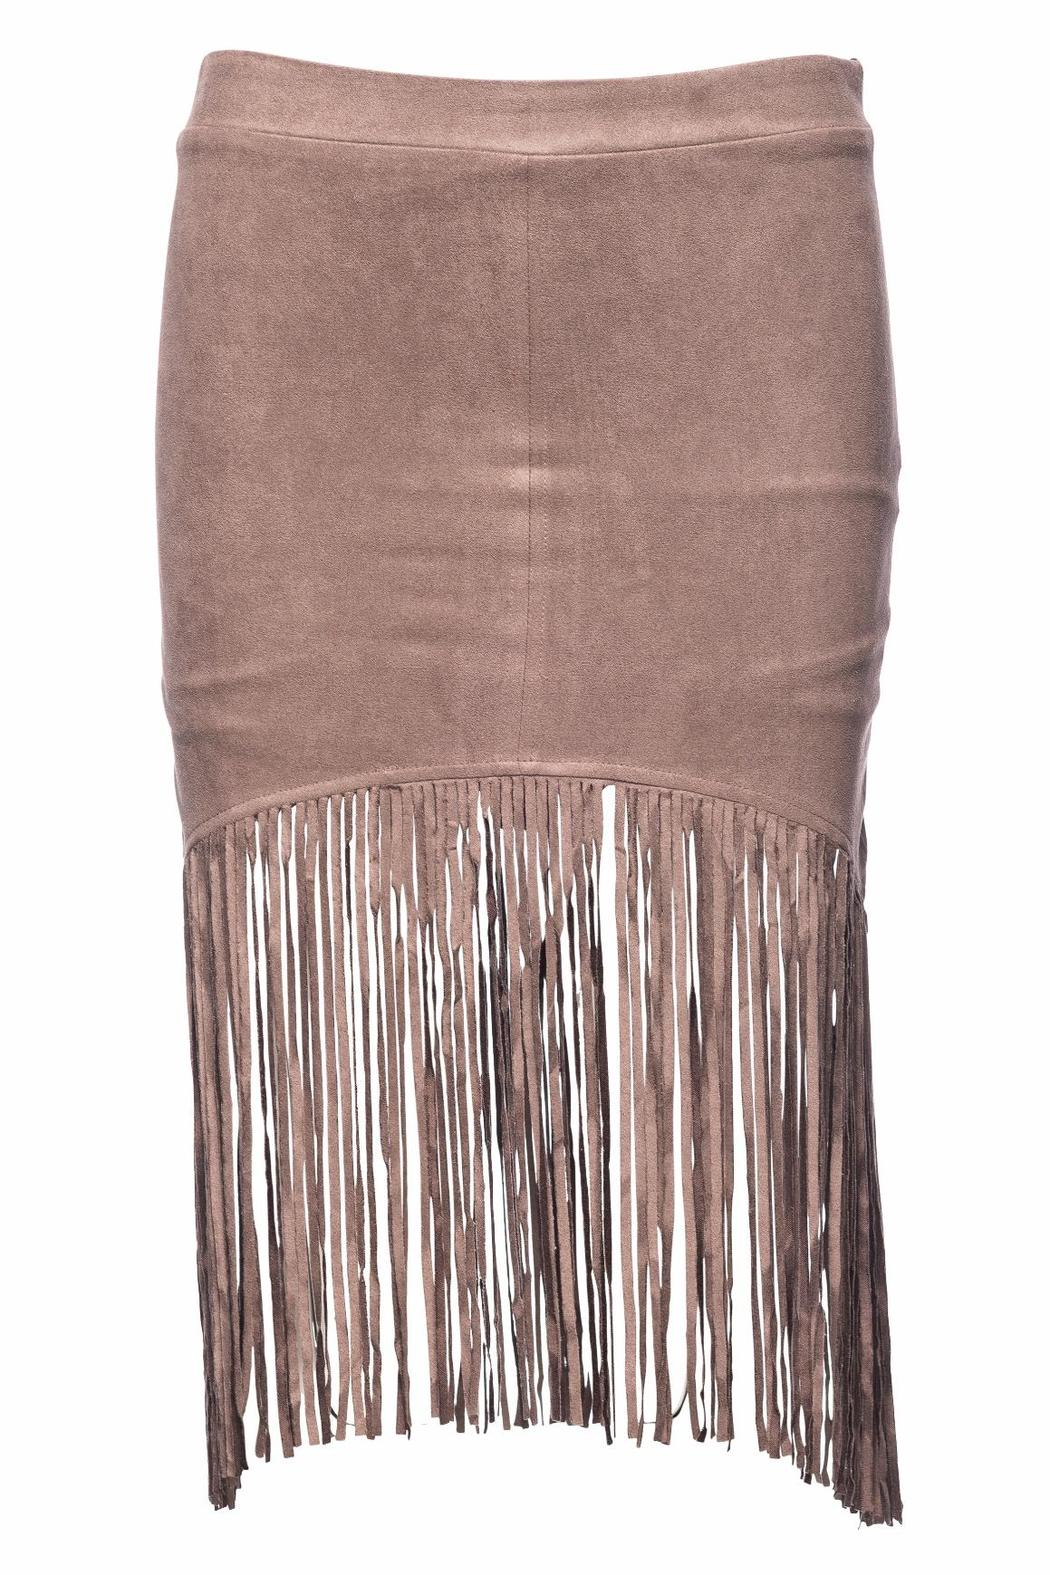 Bishop + Young Suede Fringe Skirt - Front Cropped Image